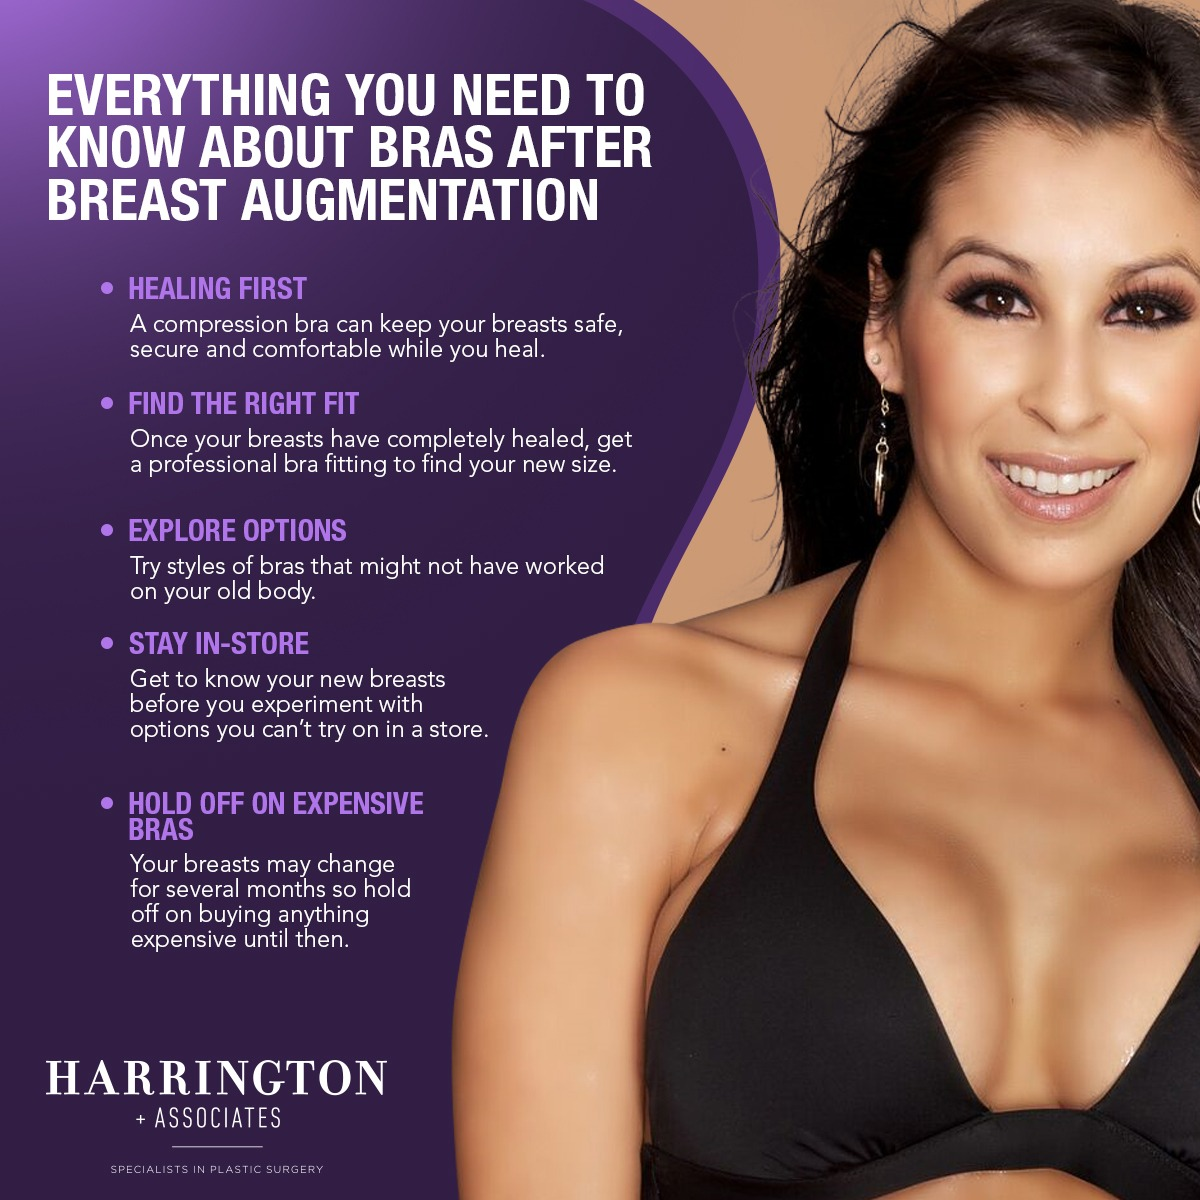 Everything You Need To Know About Bras After Breast Augmentation [Infographic]